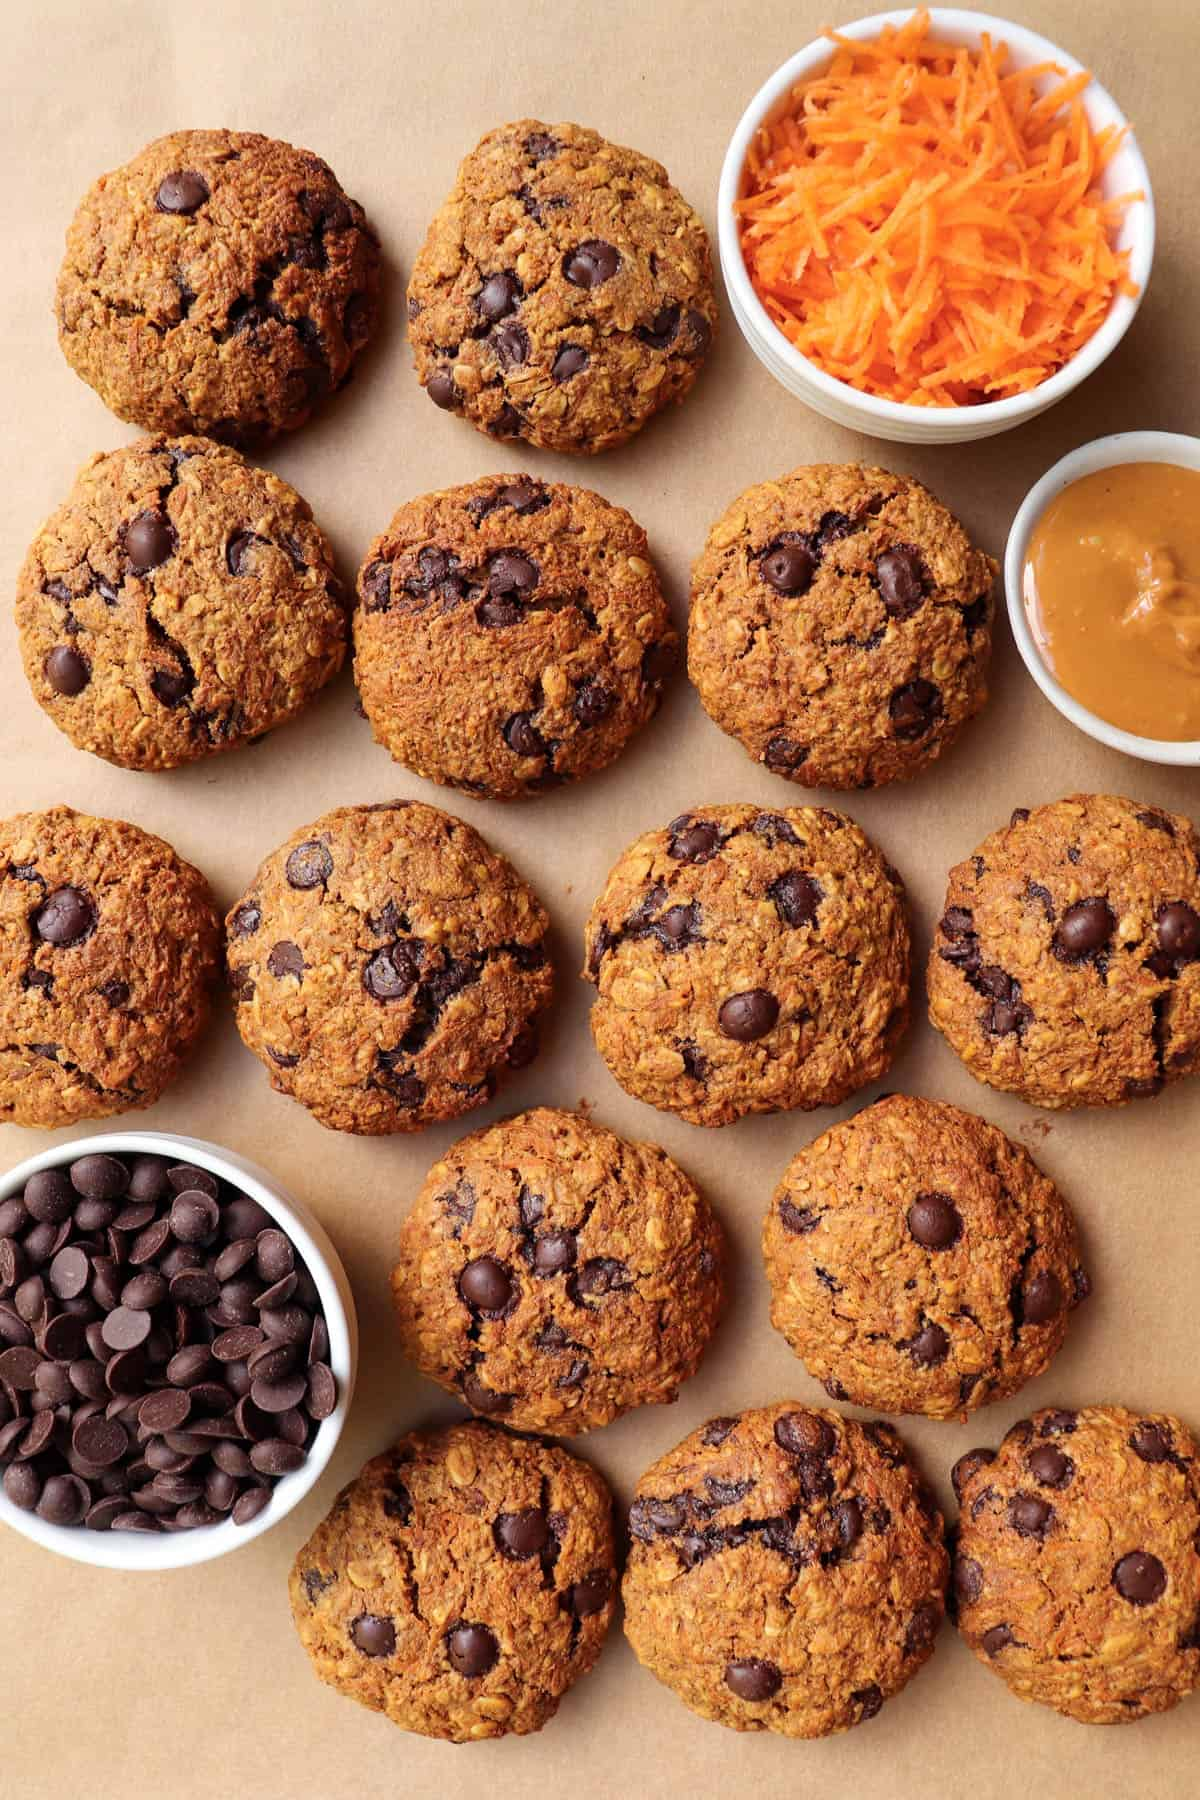 Chocolate chip cookies on baking paper. Side dish of grated carrots, chocolate chips and peanut butter for decoration.